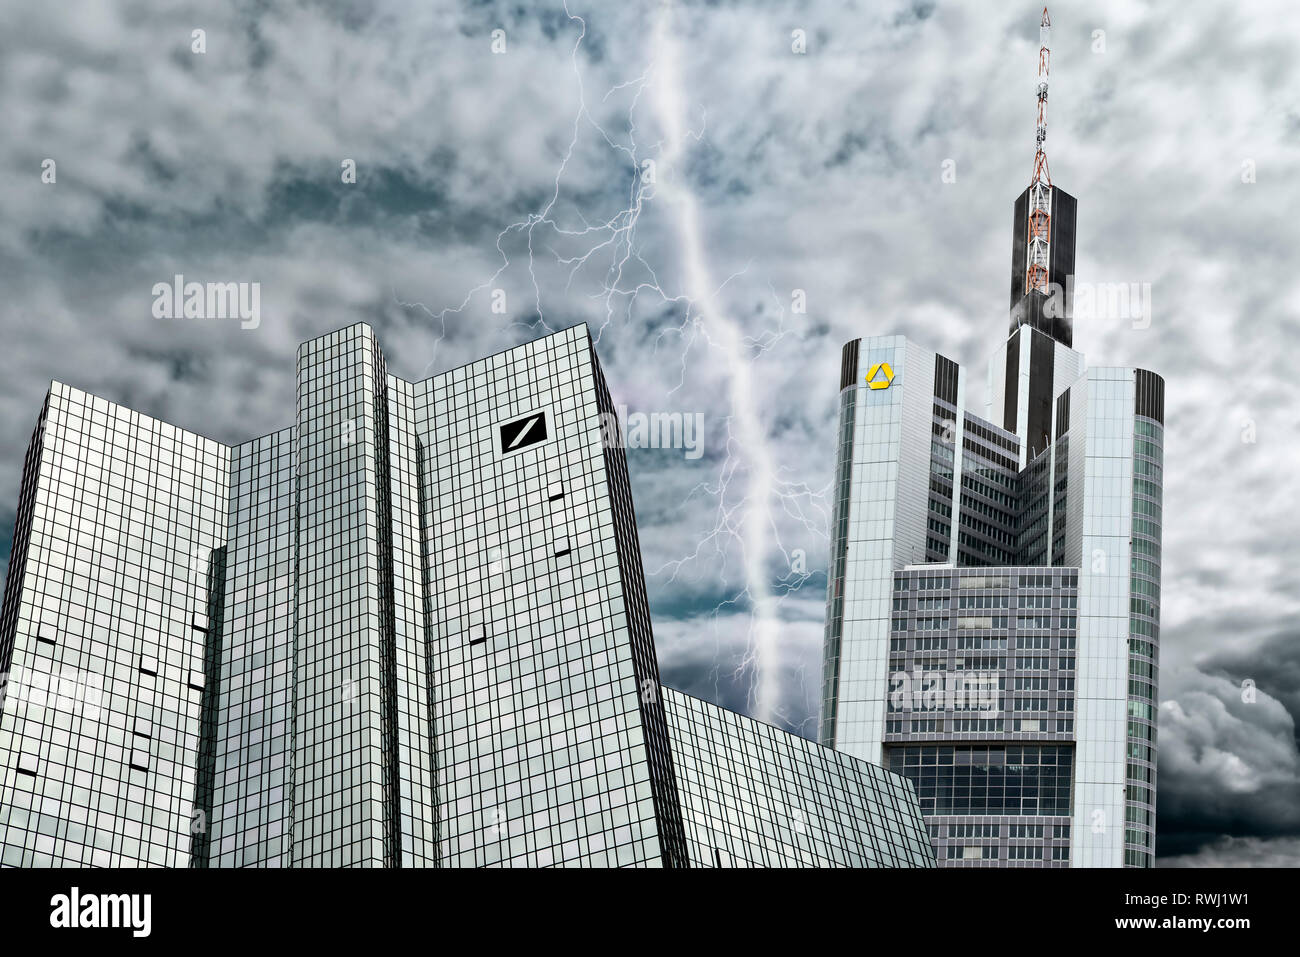 Deutsche Bank and Commerzbank in Frankfurt in front of a gray sky symbolising the crisis of the financial institutions and their possible merger.[M] Stock Photo